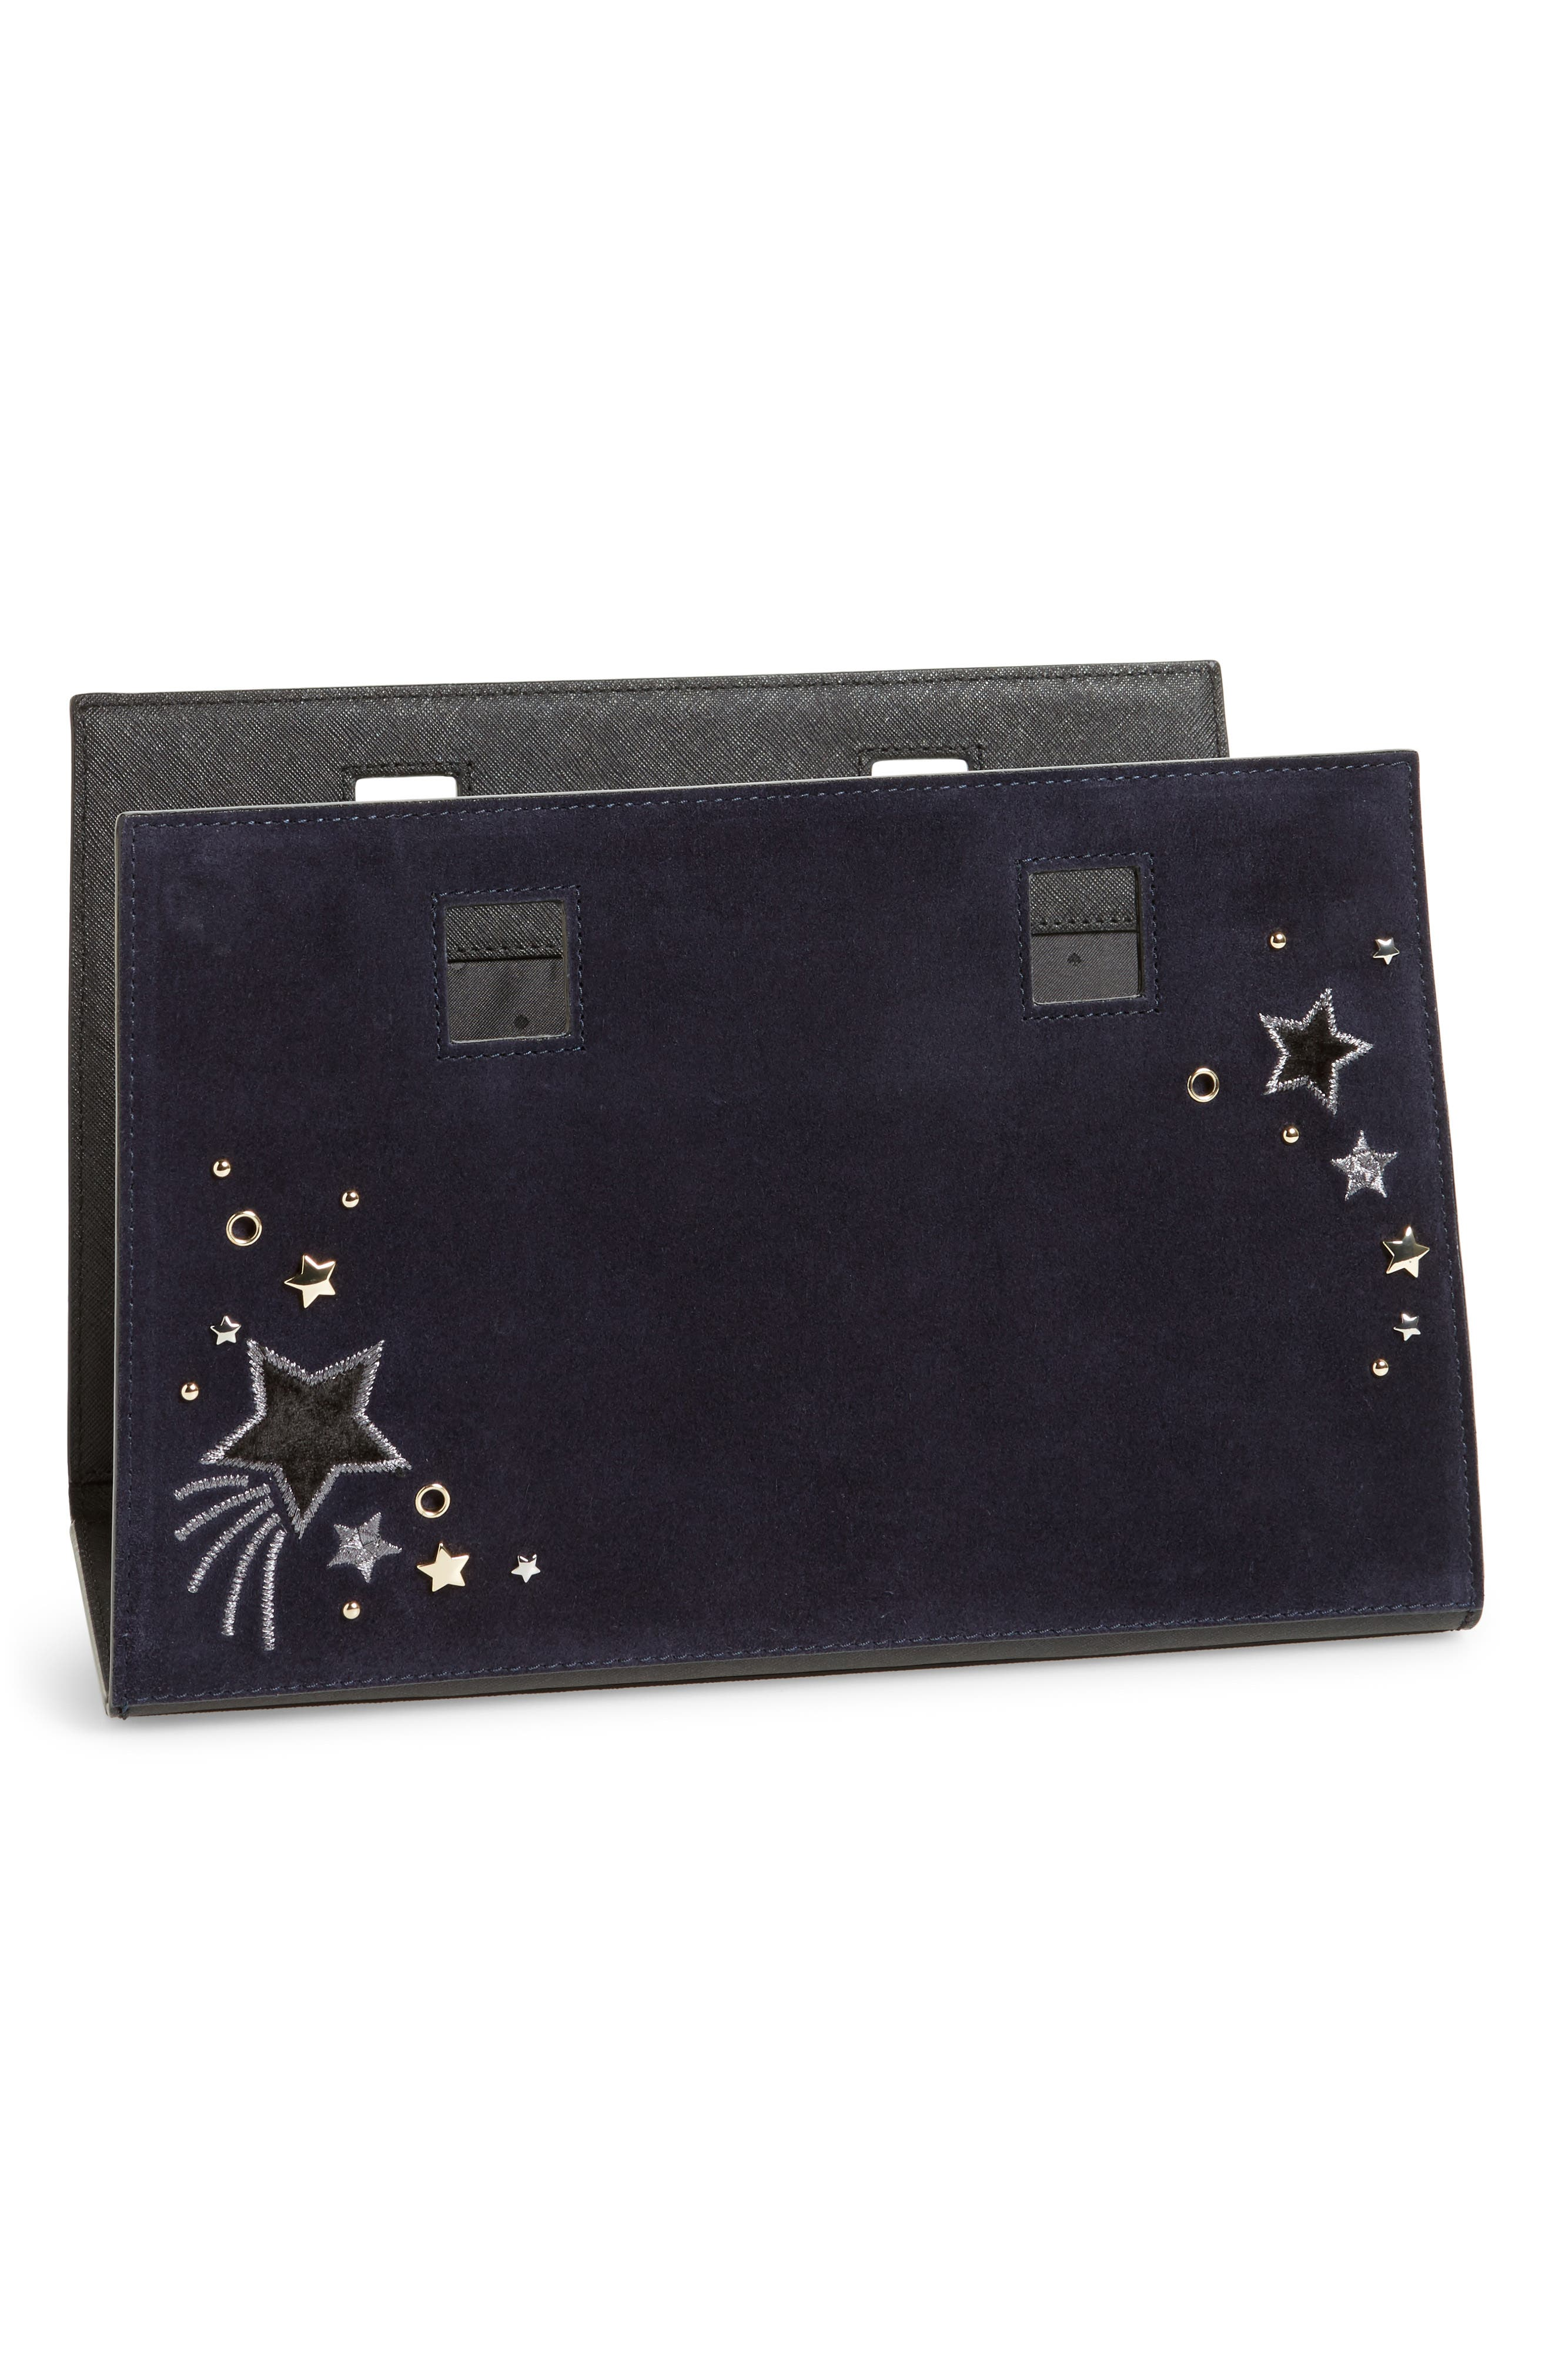 Main Image - kate spade new york make it mine star embellished leather snap-on accent flap